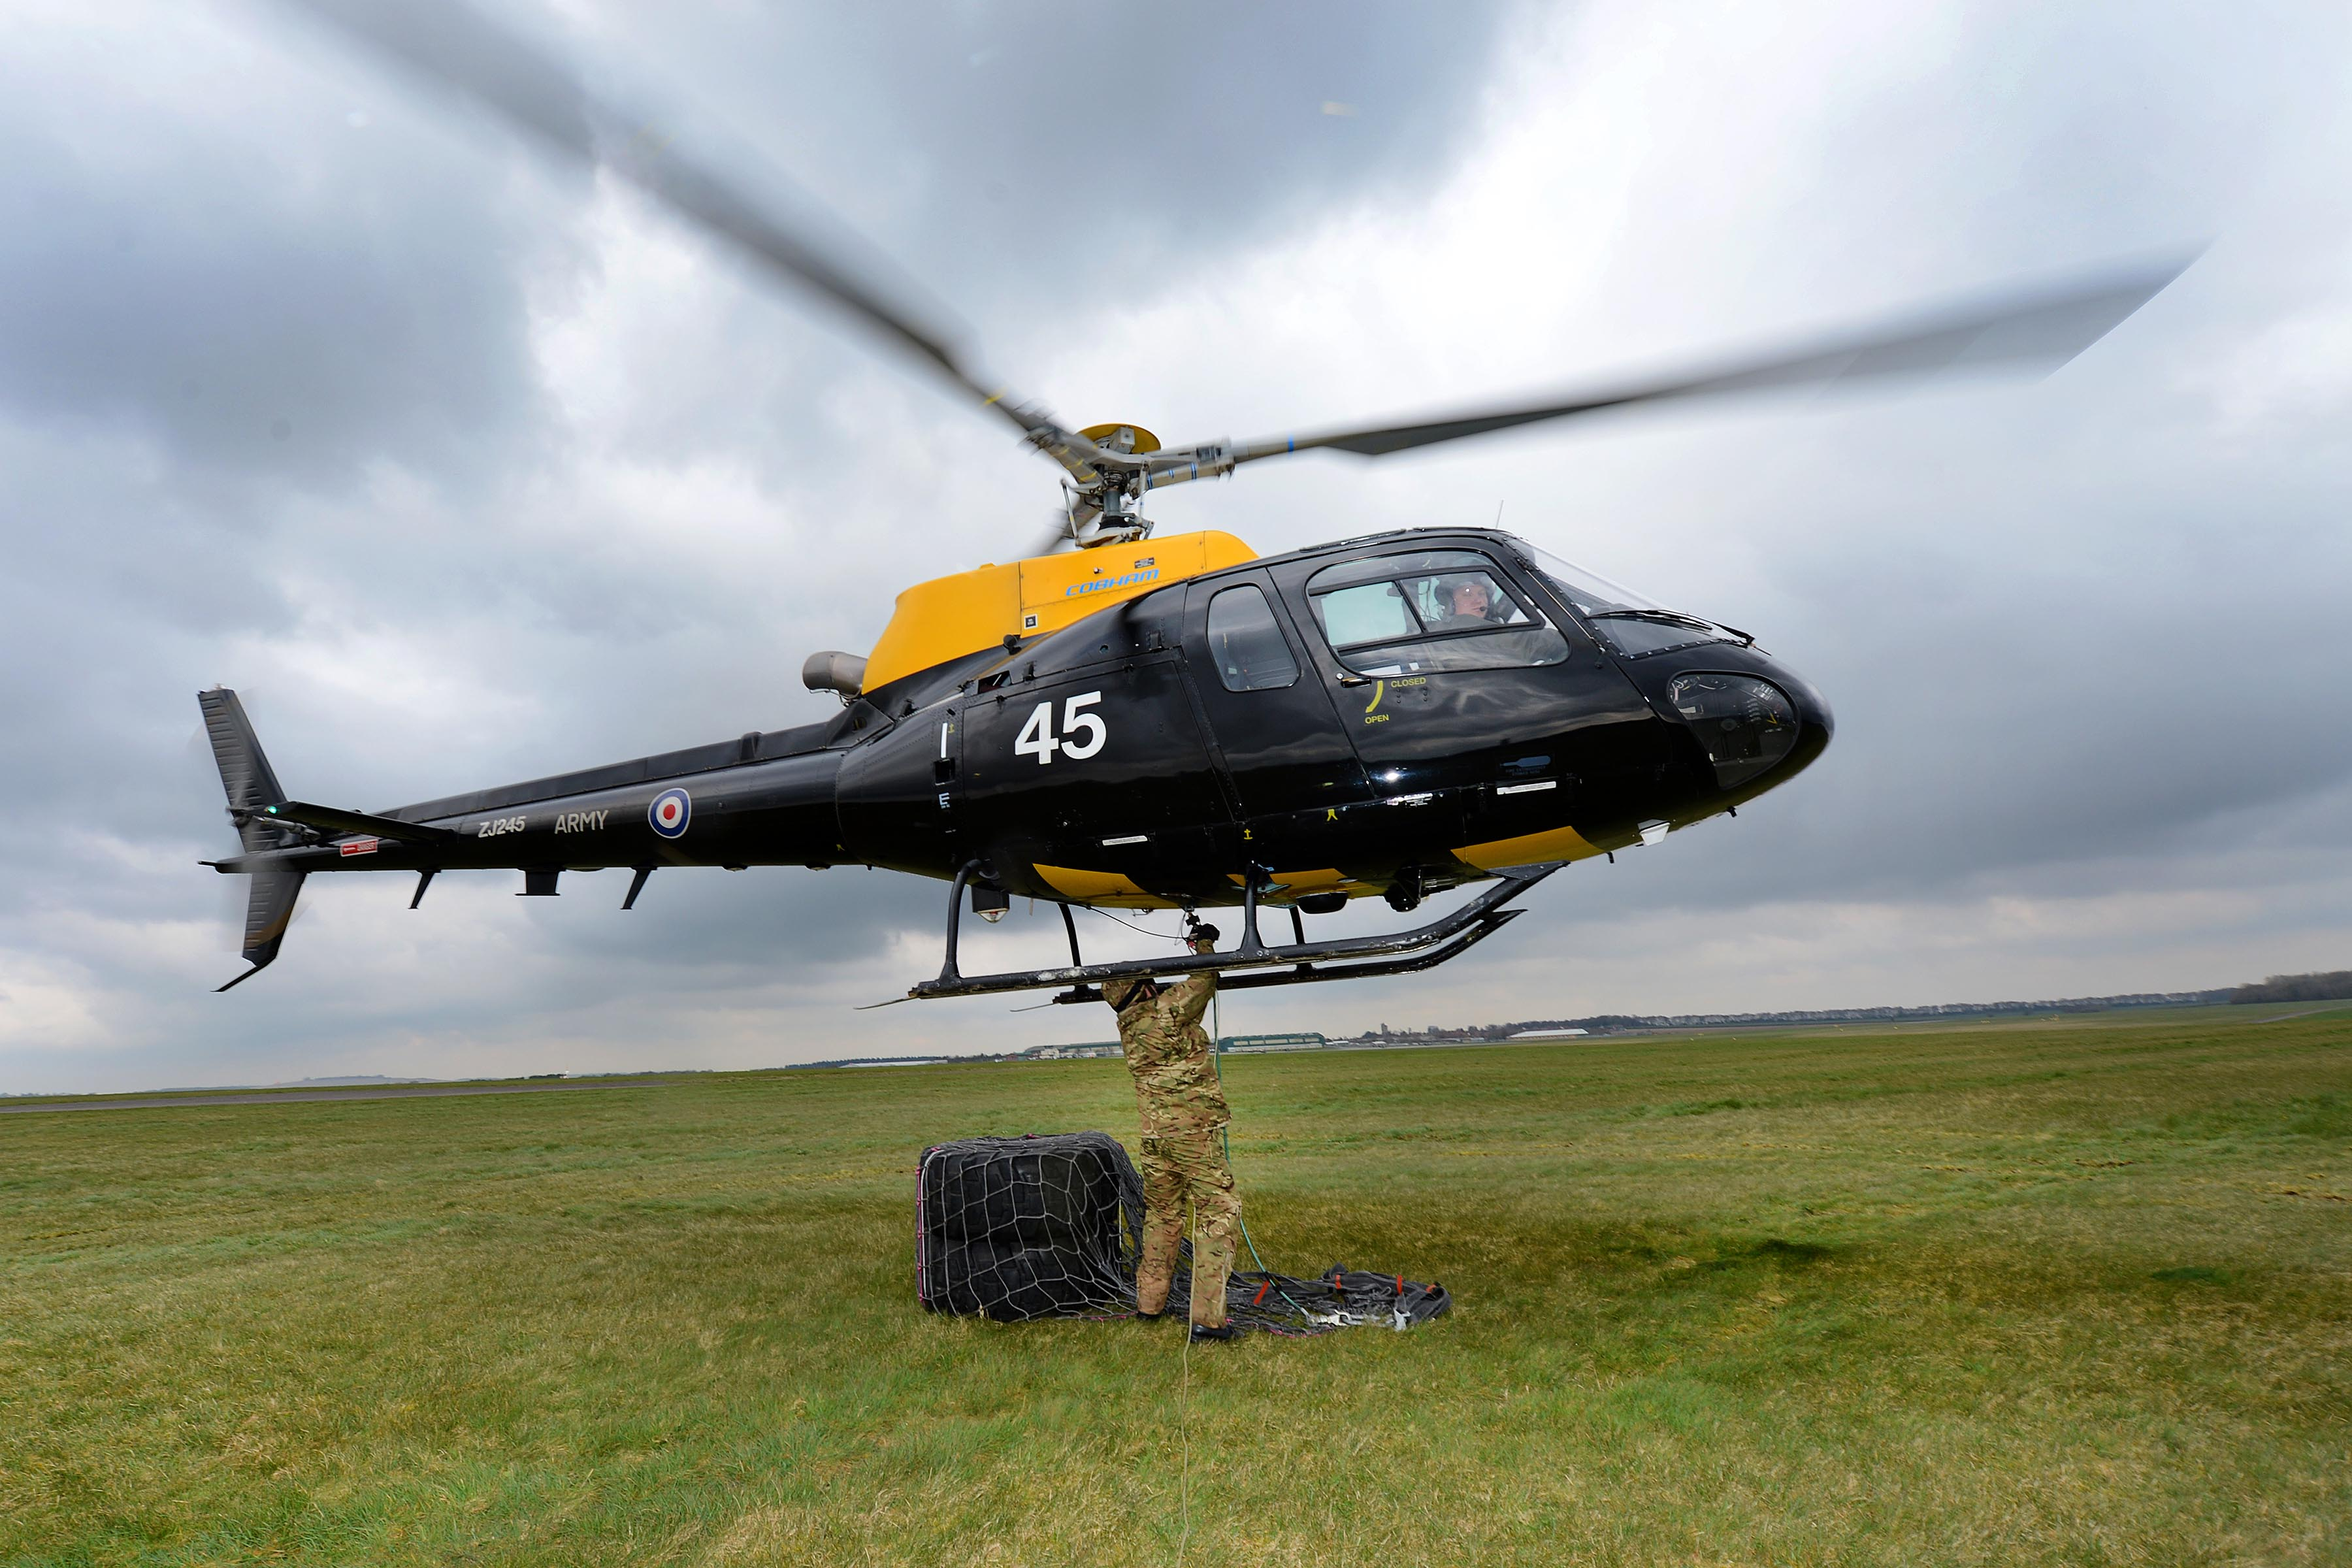 filearmy reserves underslung load training with squirrel helicopter mod 45156919jpg - Helicopter Mod